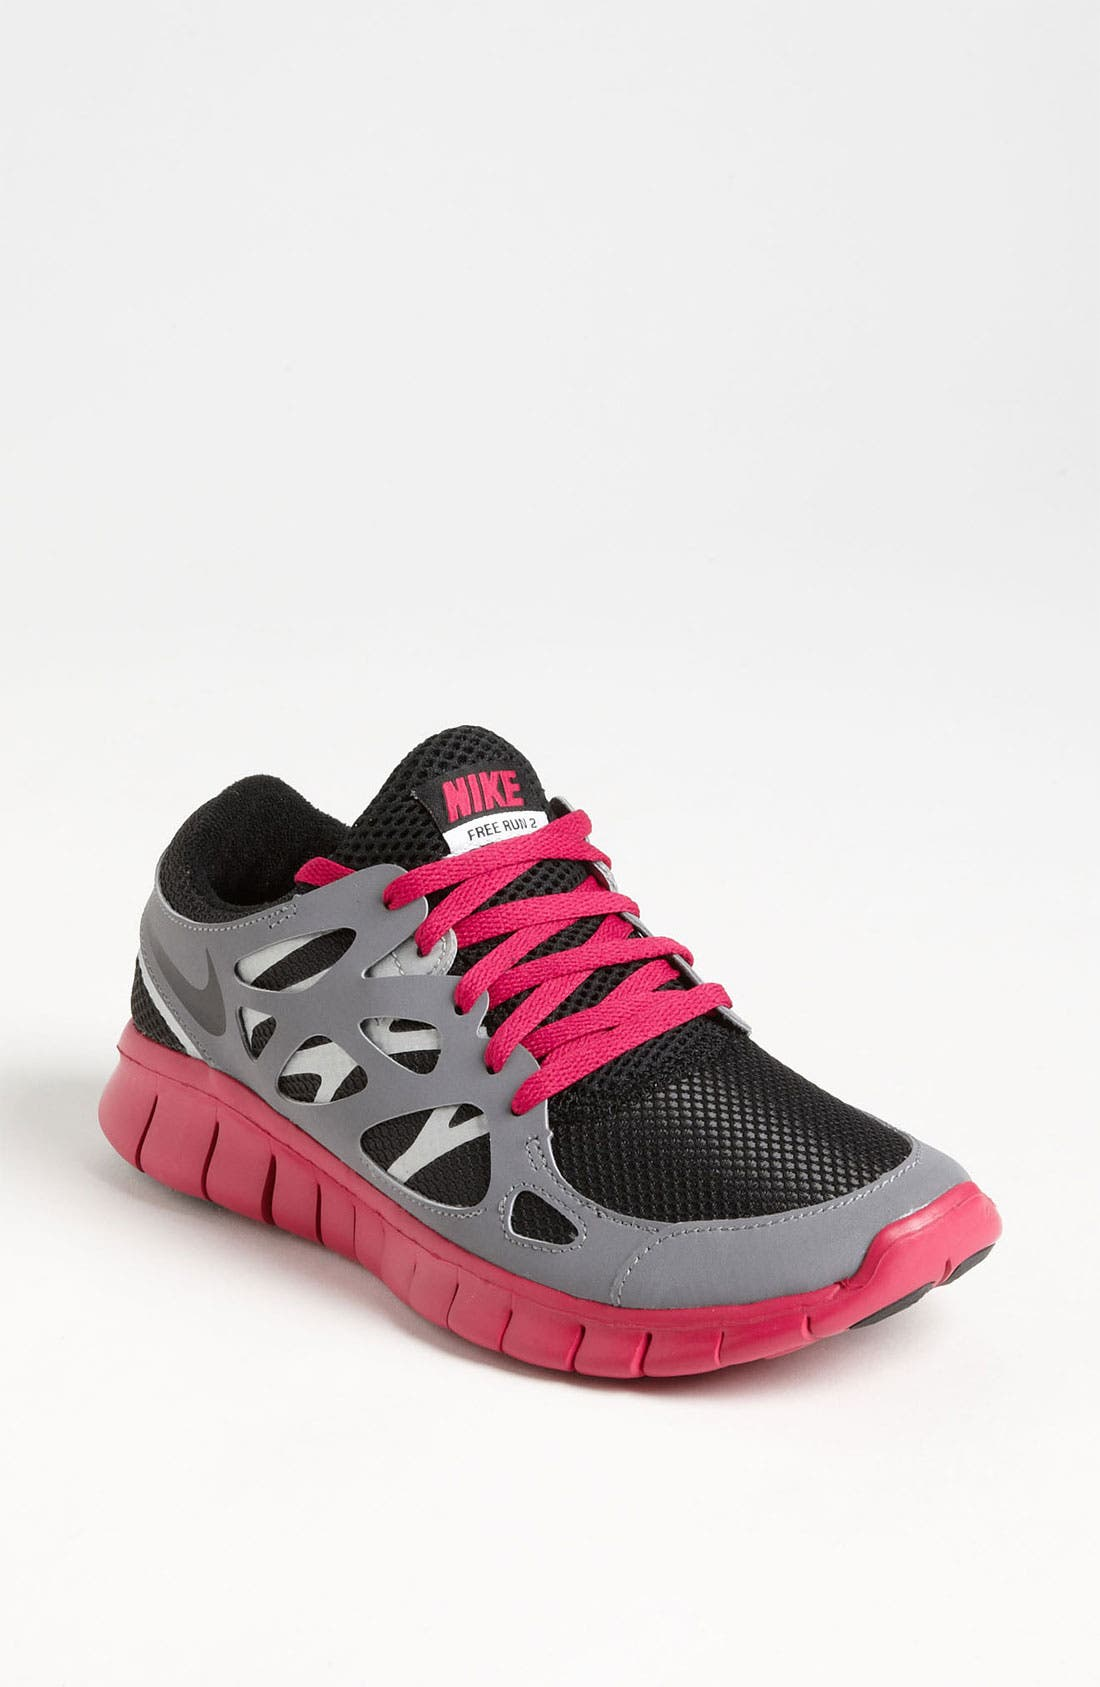 Alternate Image 1 Selected - Nike 'Free Run 2 EXT' Running Shoe (Women)